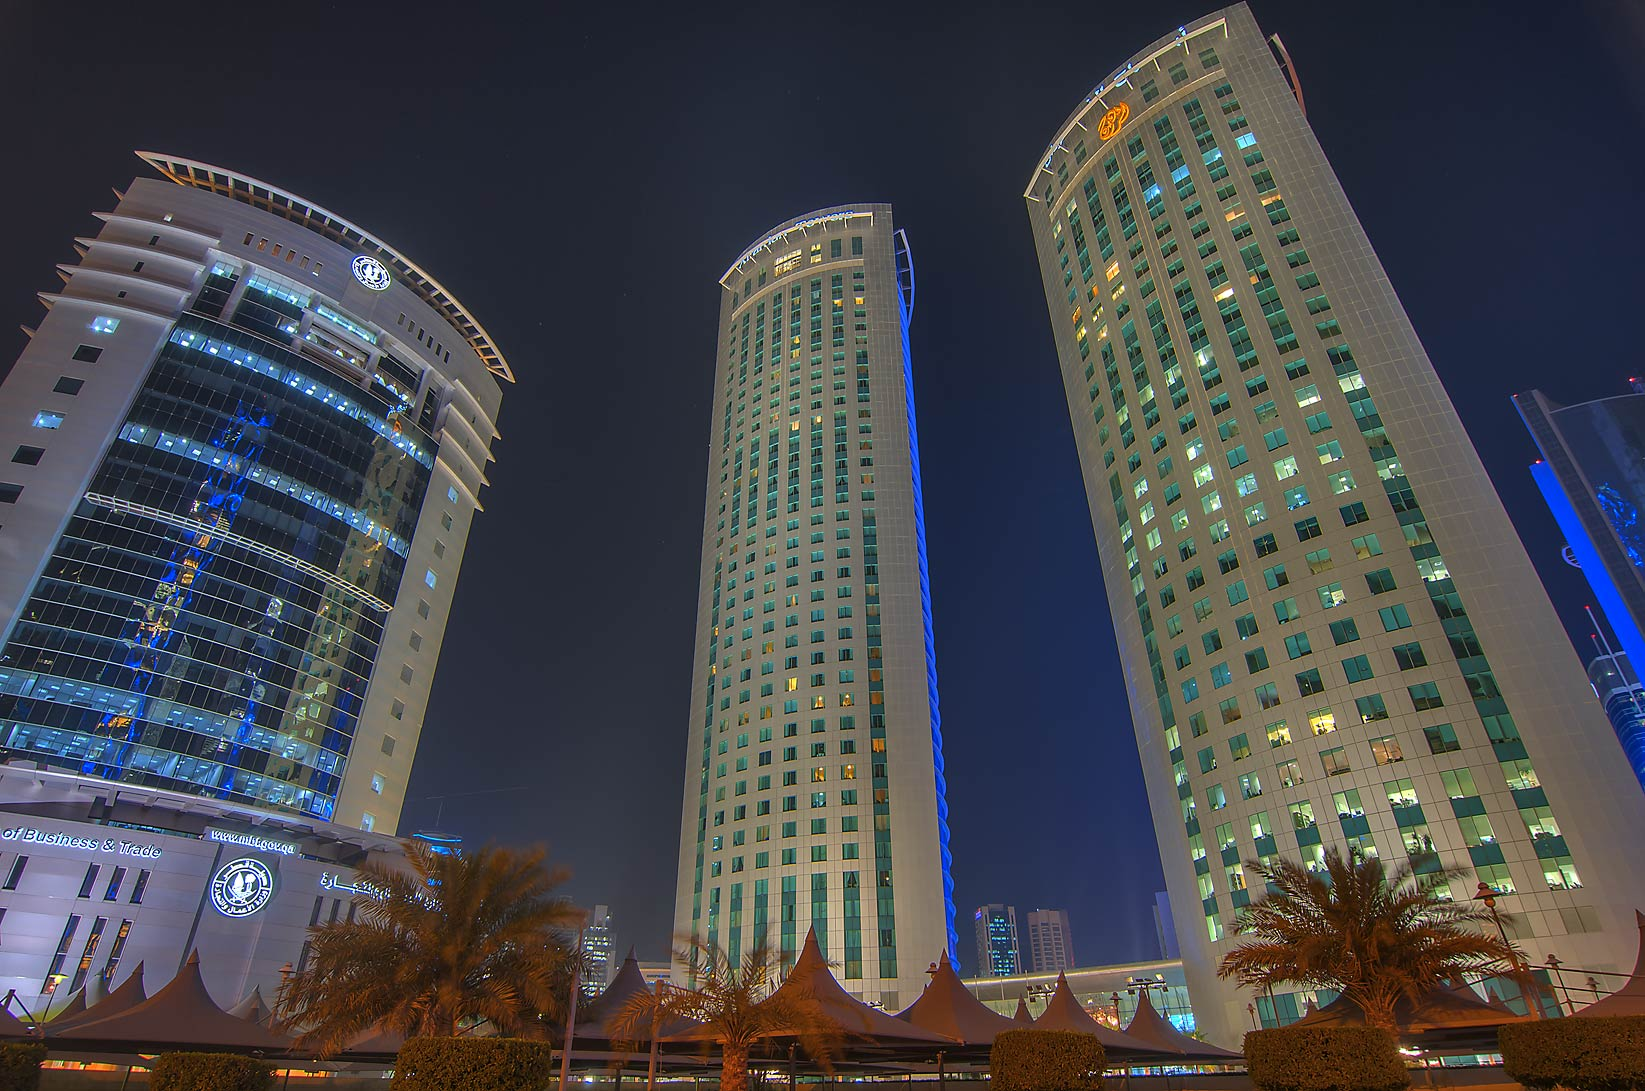 Ministry of Trade and Al Fardan Towers in West Bay at evening. Doha, Qatar